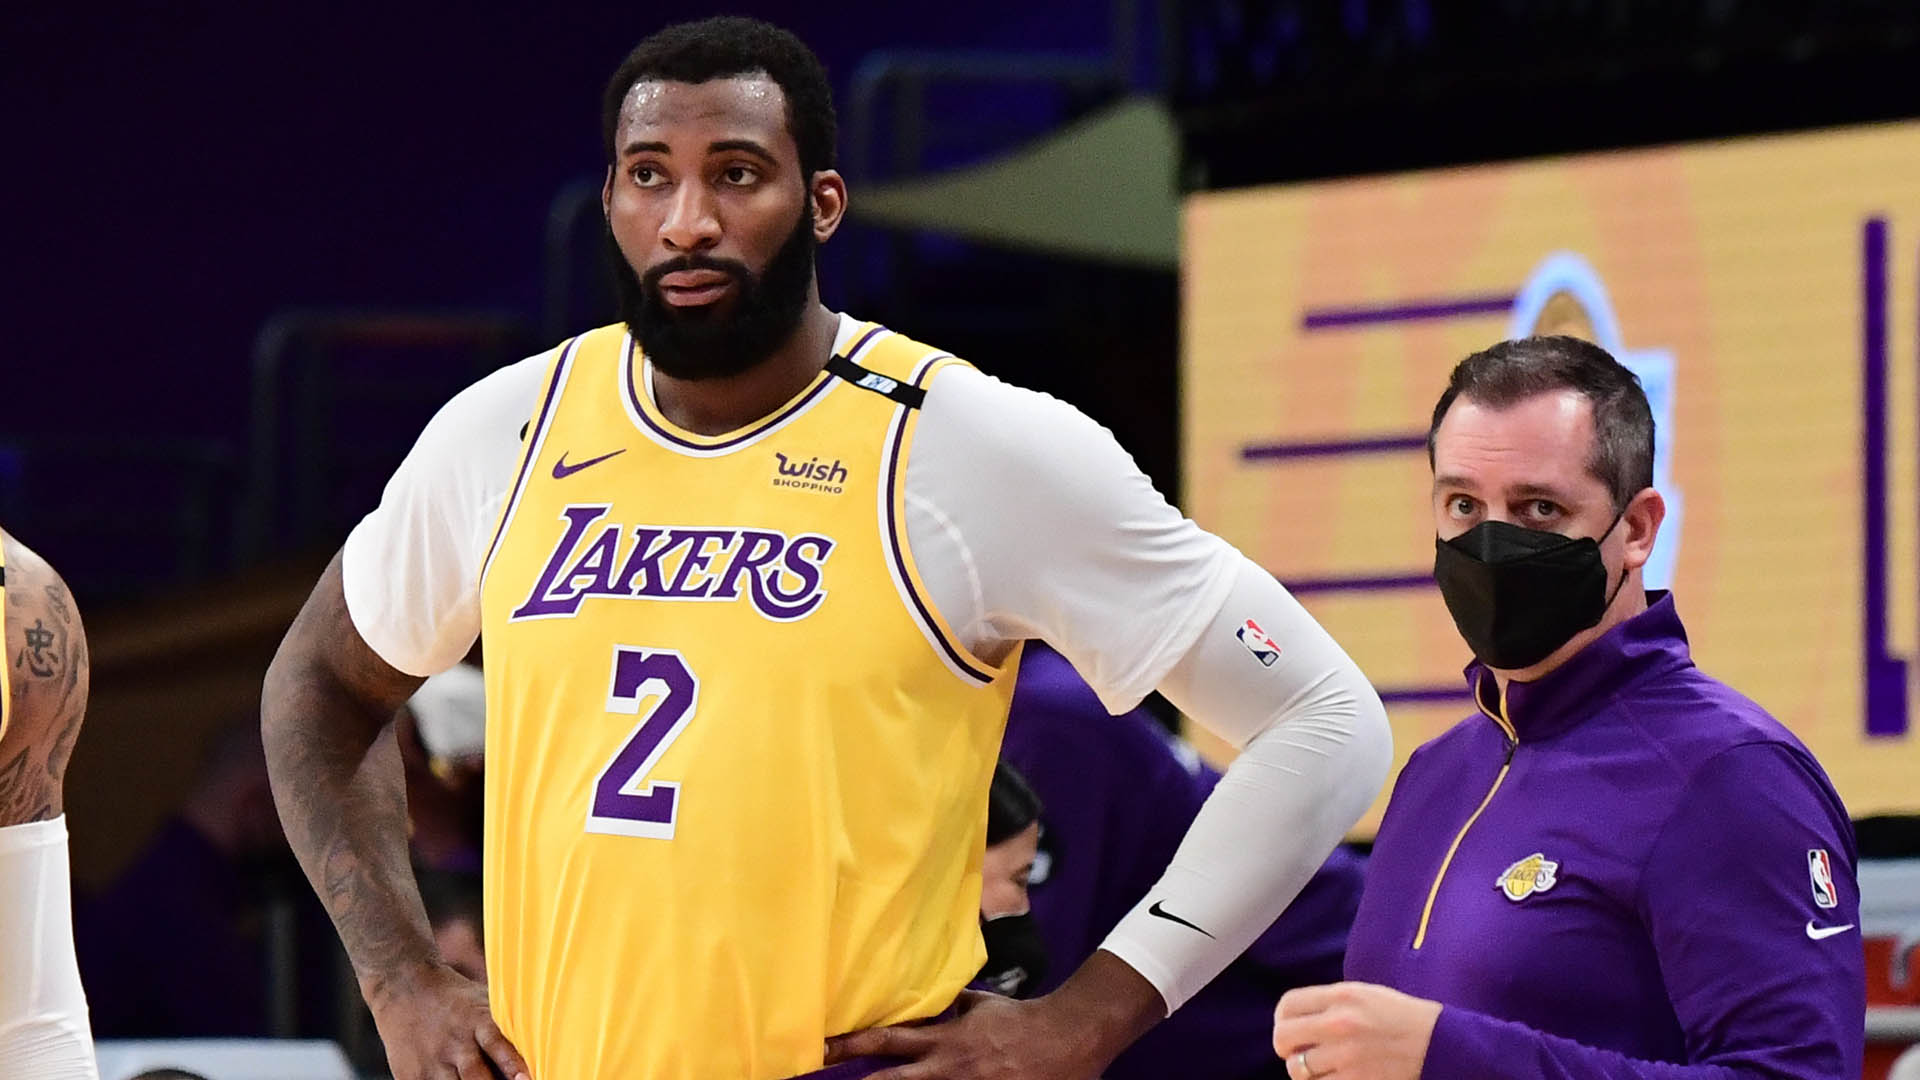 Lakers center Andre Drummond to play vs. Heat